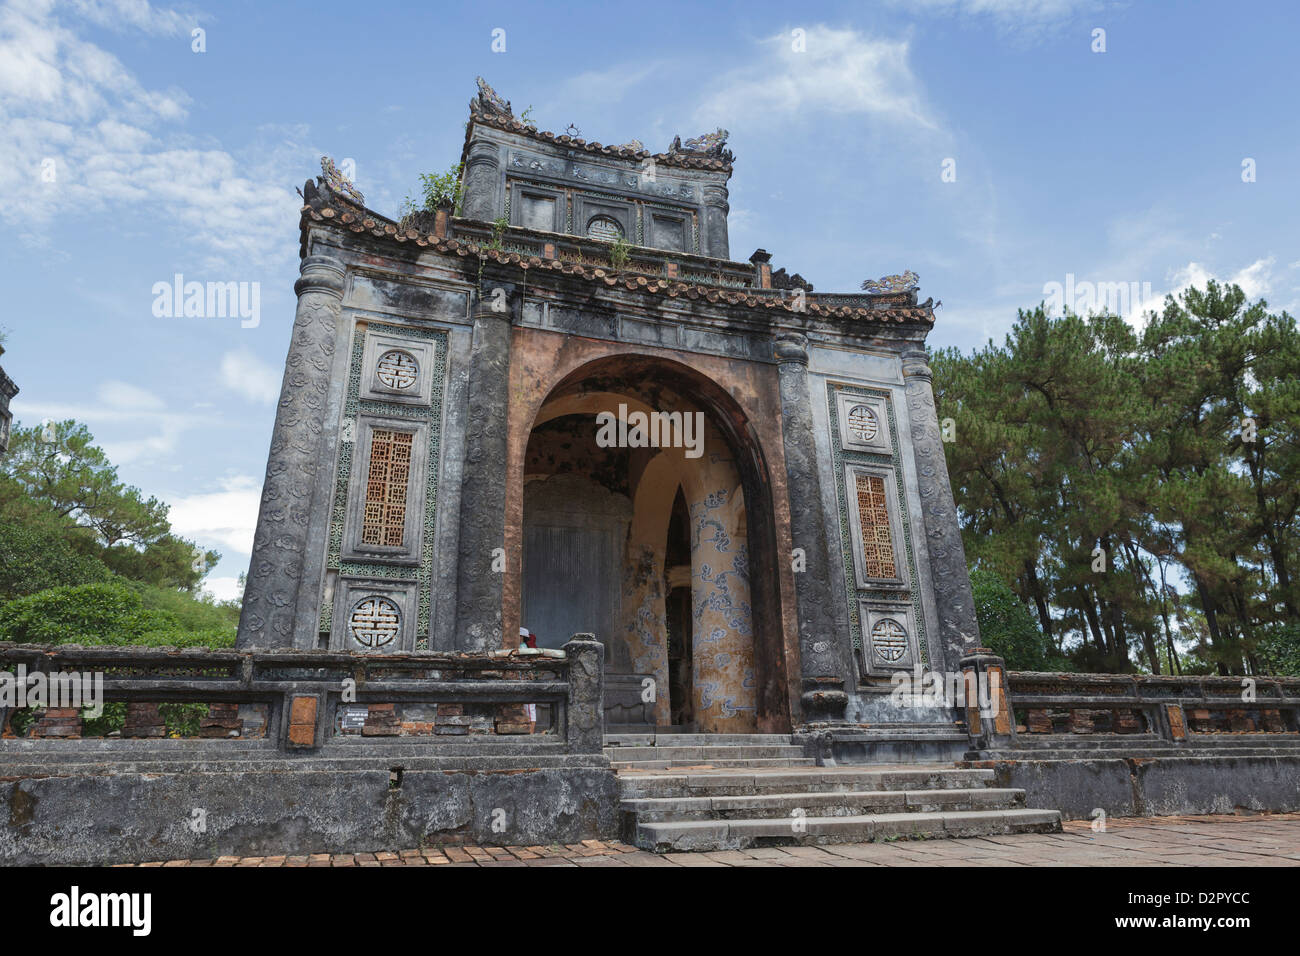 An archway at Tu Duc Royal Tomb, Hue, UNESCO World Heritage Site, Vietnam, Indochina, Southeast Asia, Asia - Stock Image